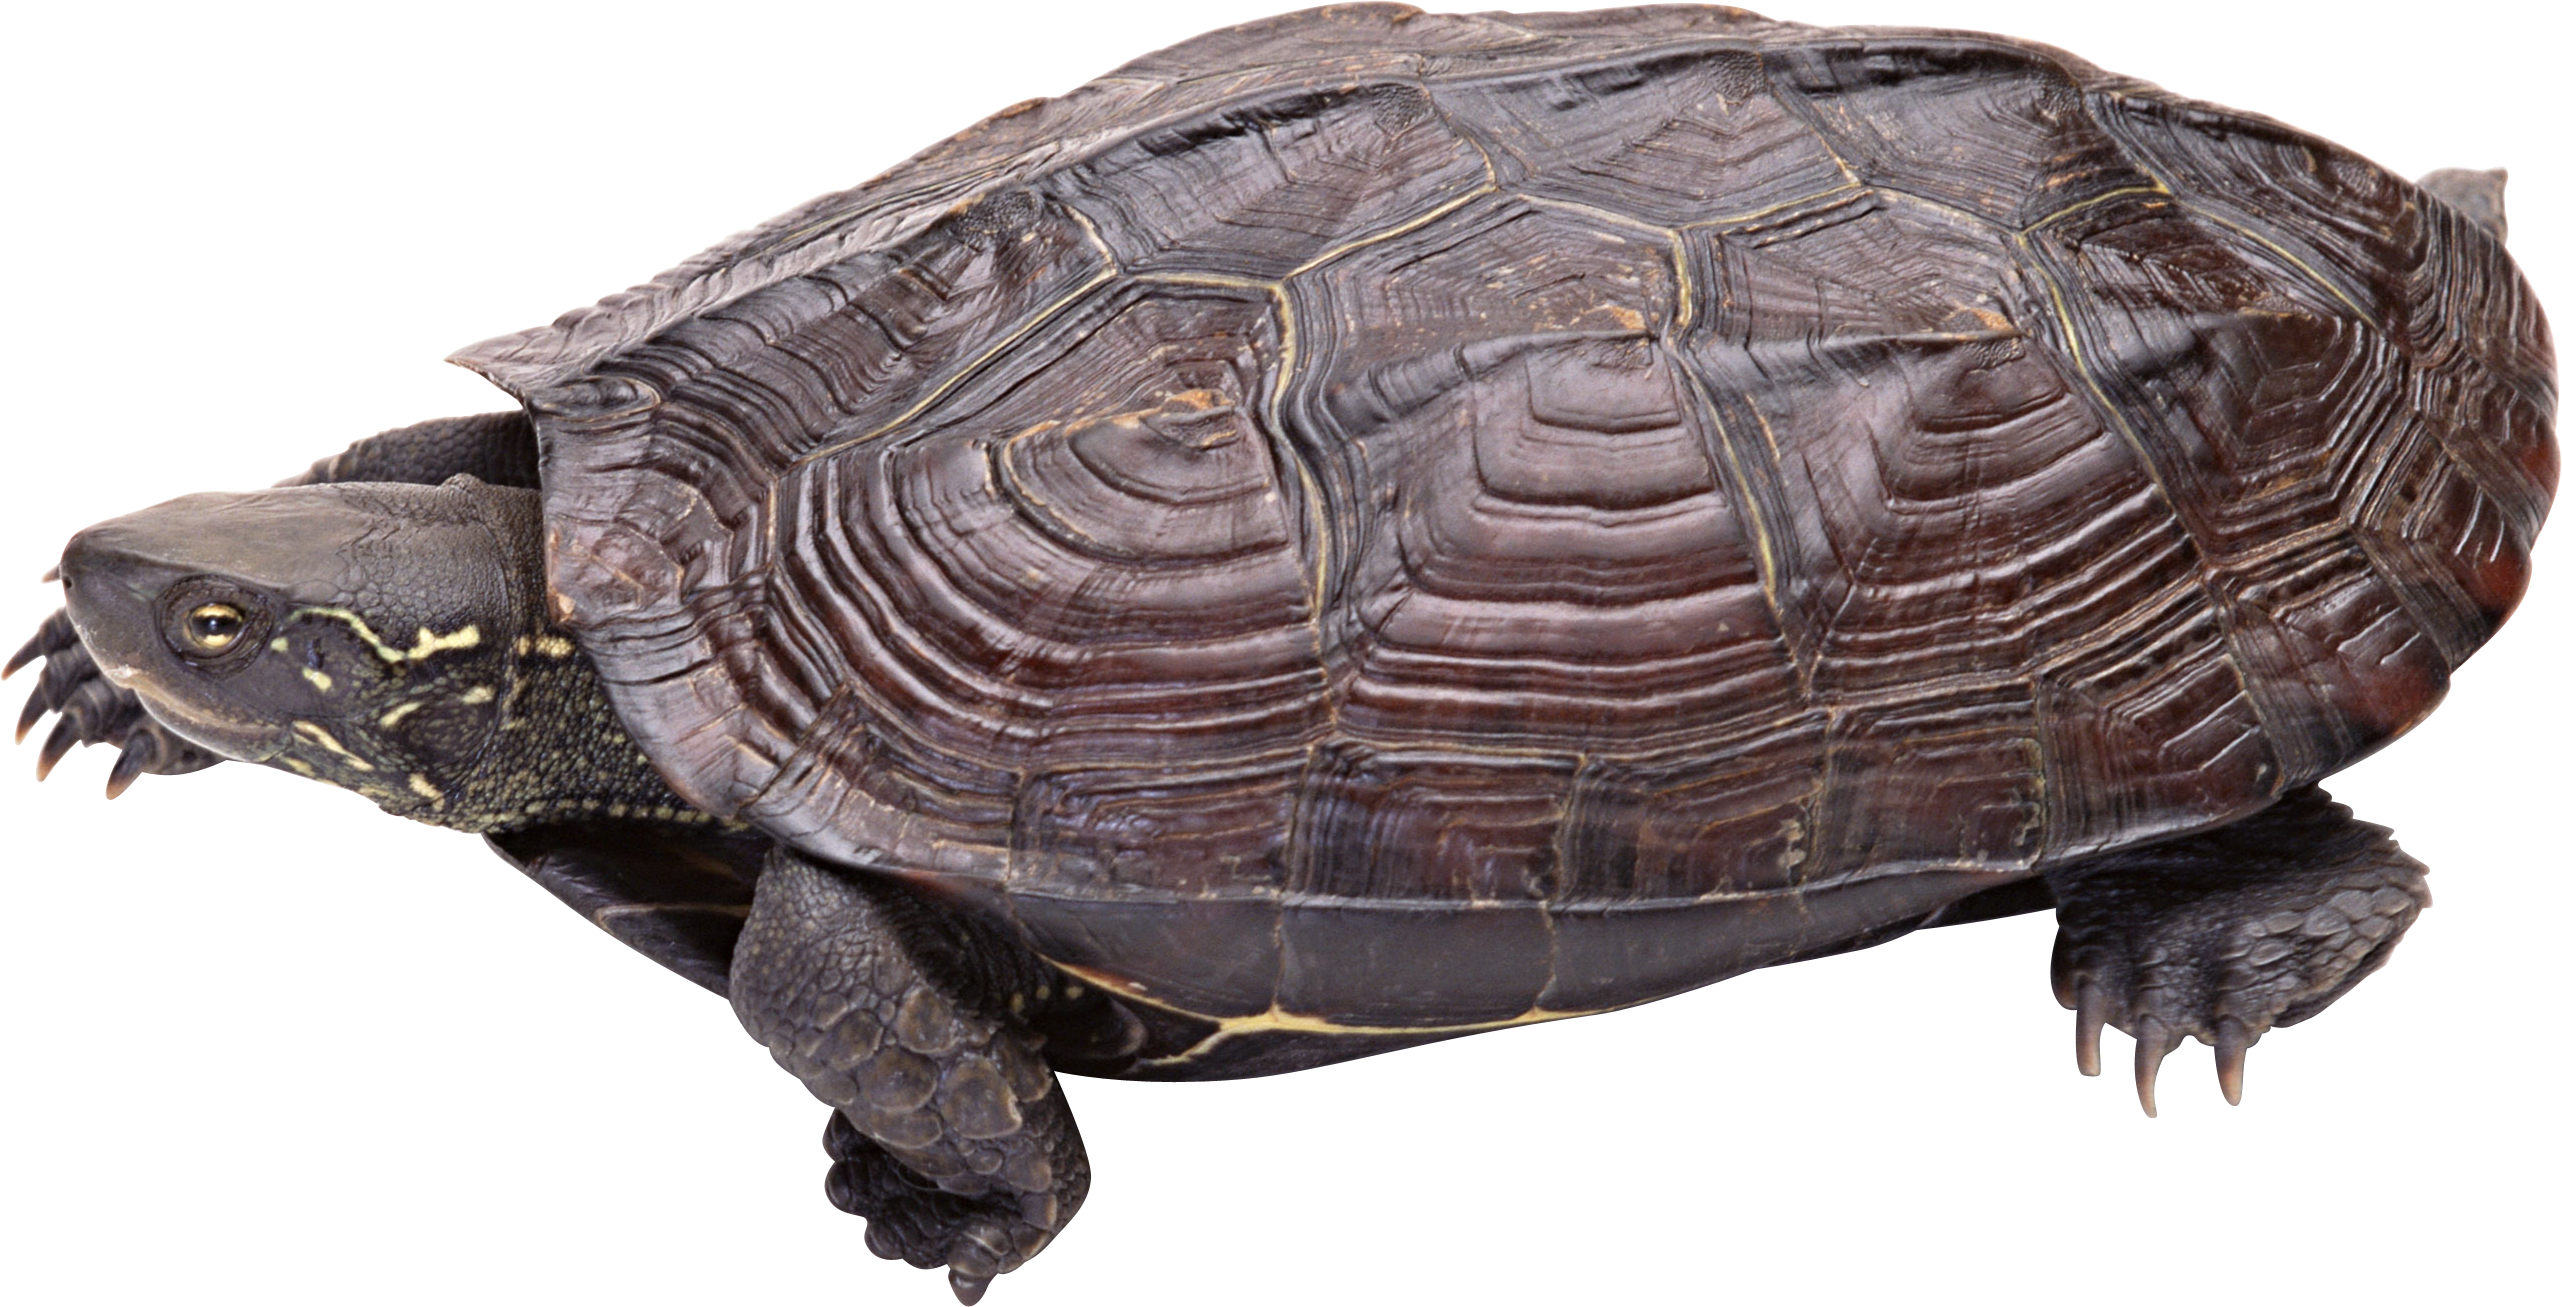 Png transparent images pluspng. Clipart turtle snapping turtle